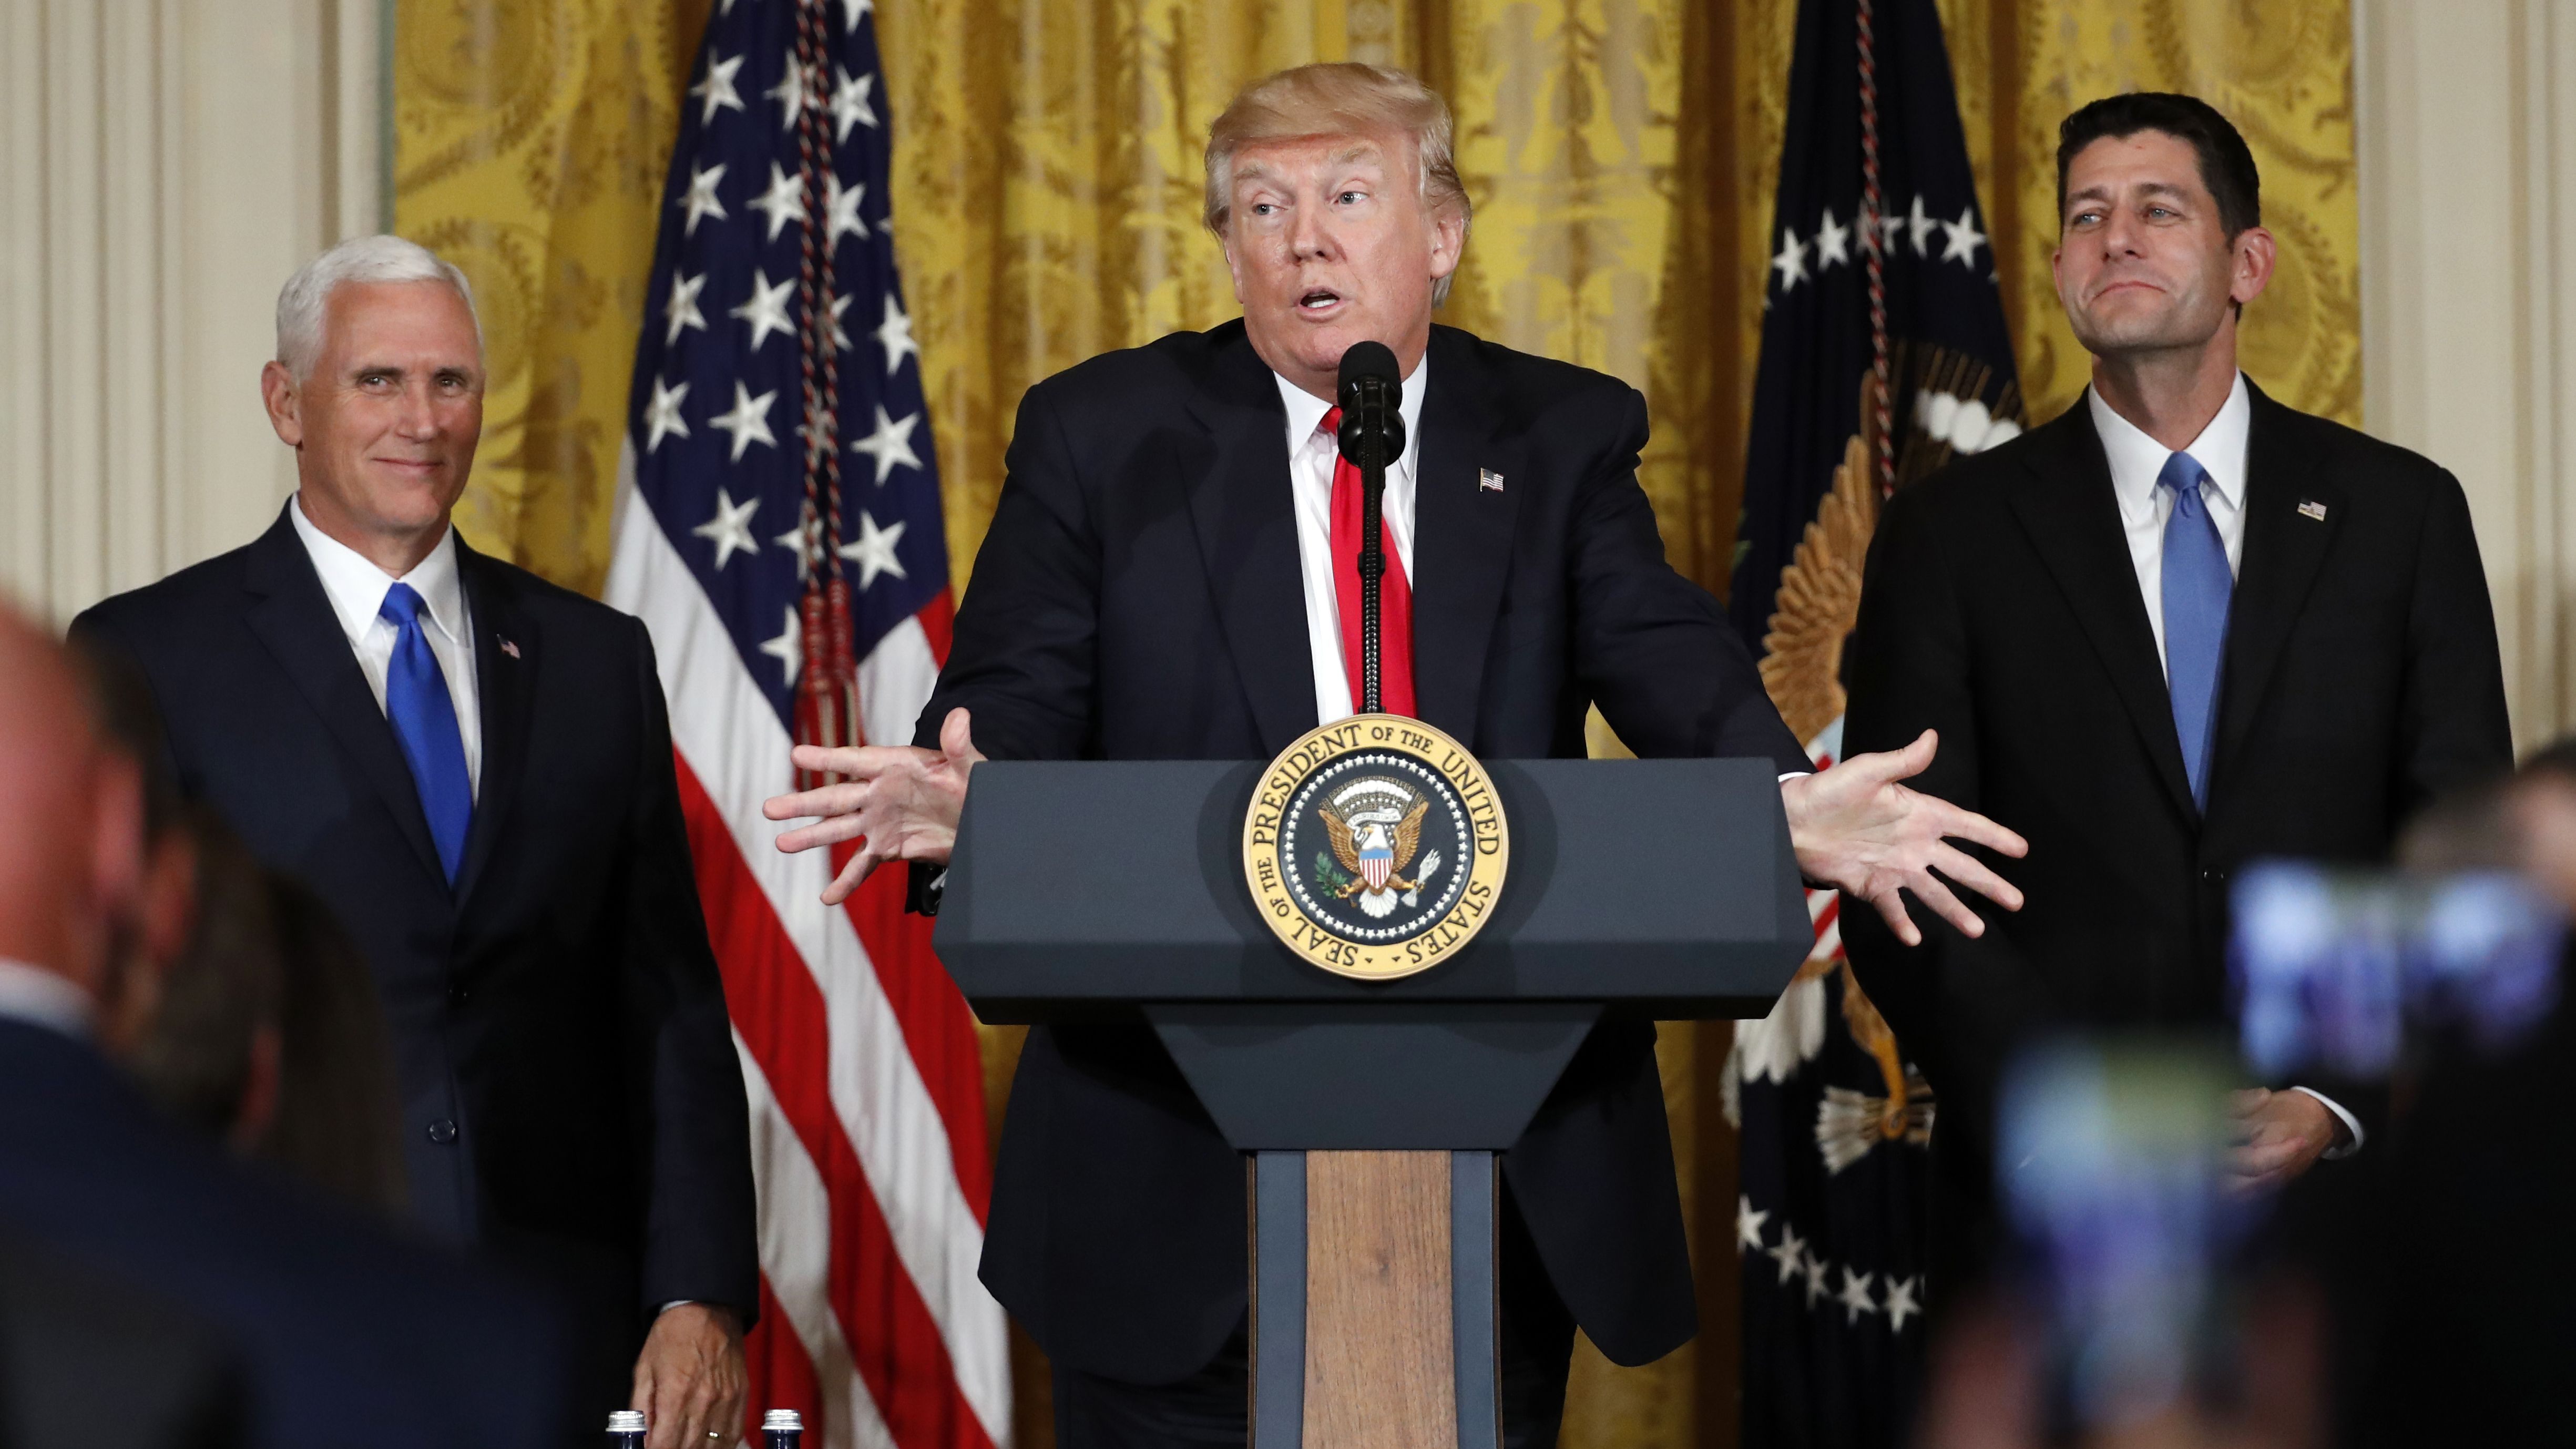 President Donald Trump, accompanied by Vice President Mike Pence, and House Speaker Paul Ryan of Wis., gestures while speaking in the East Room of the White House, Wednesday, July 26, 2017, in Washington. Trump is announcing the first U.S. assembly plant for electronics giant Foxconn in a project that's expected to result in billions of dollars in investment in the state and create thousands of jobs. (AP Photo/Alex Brandon)